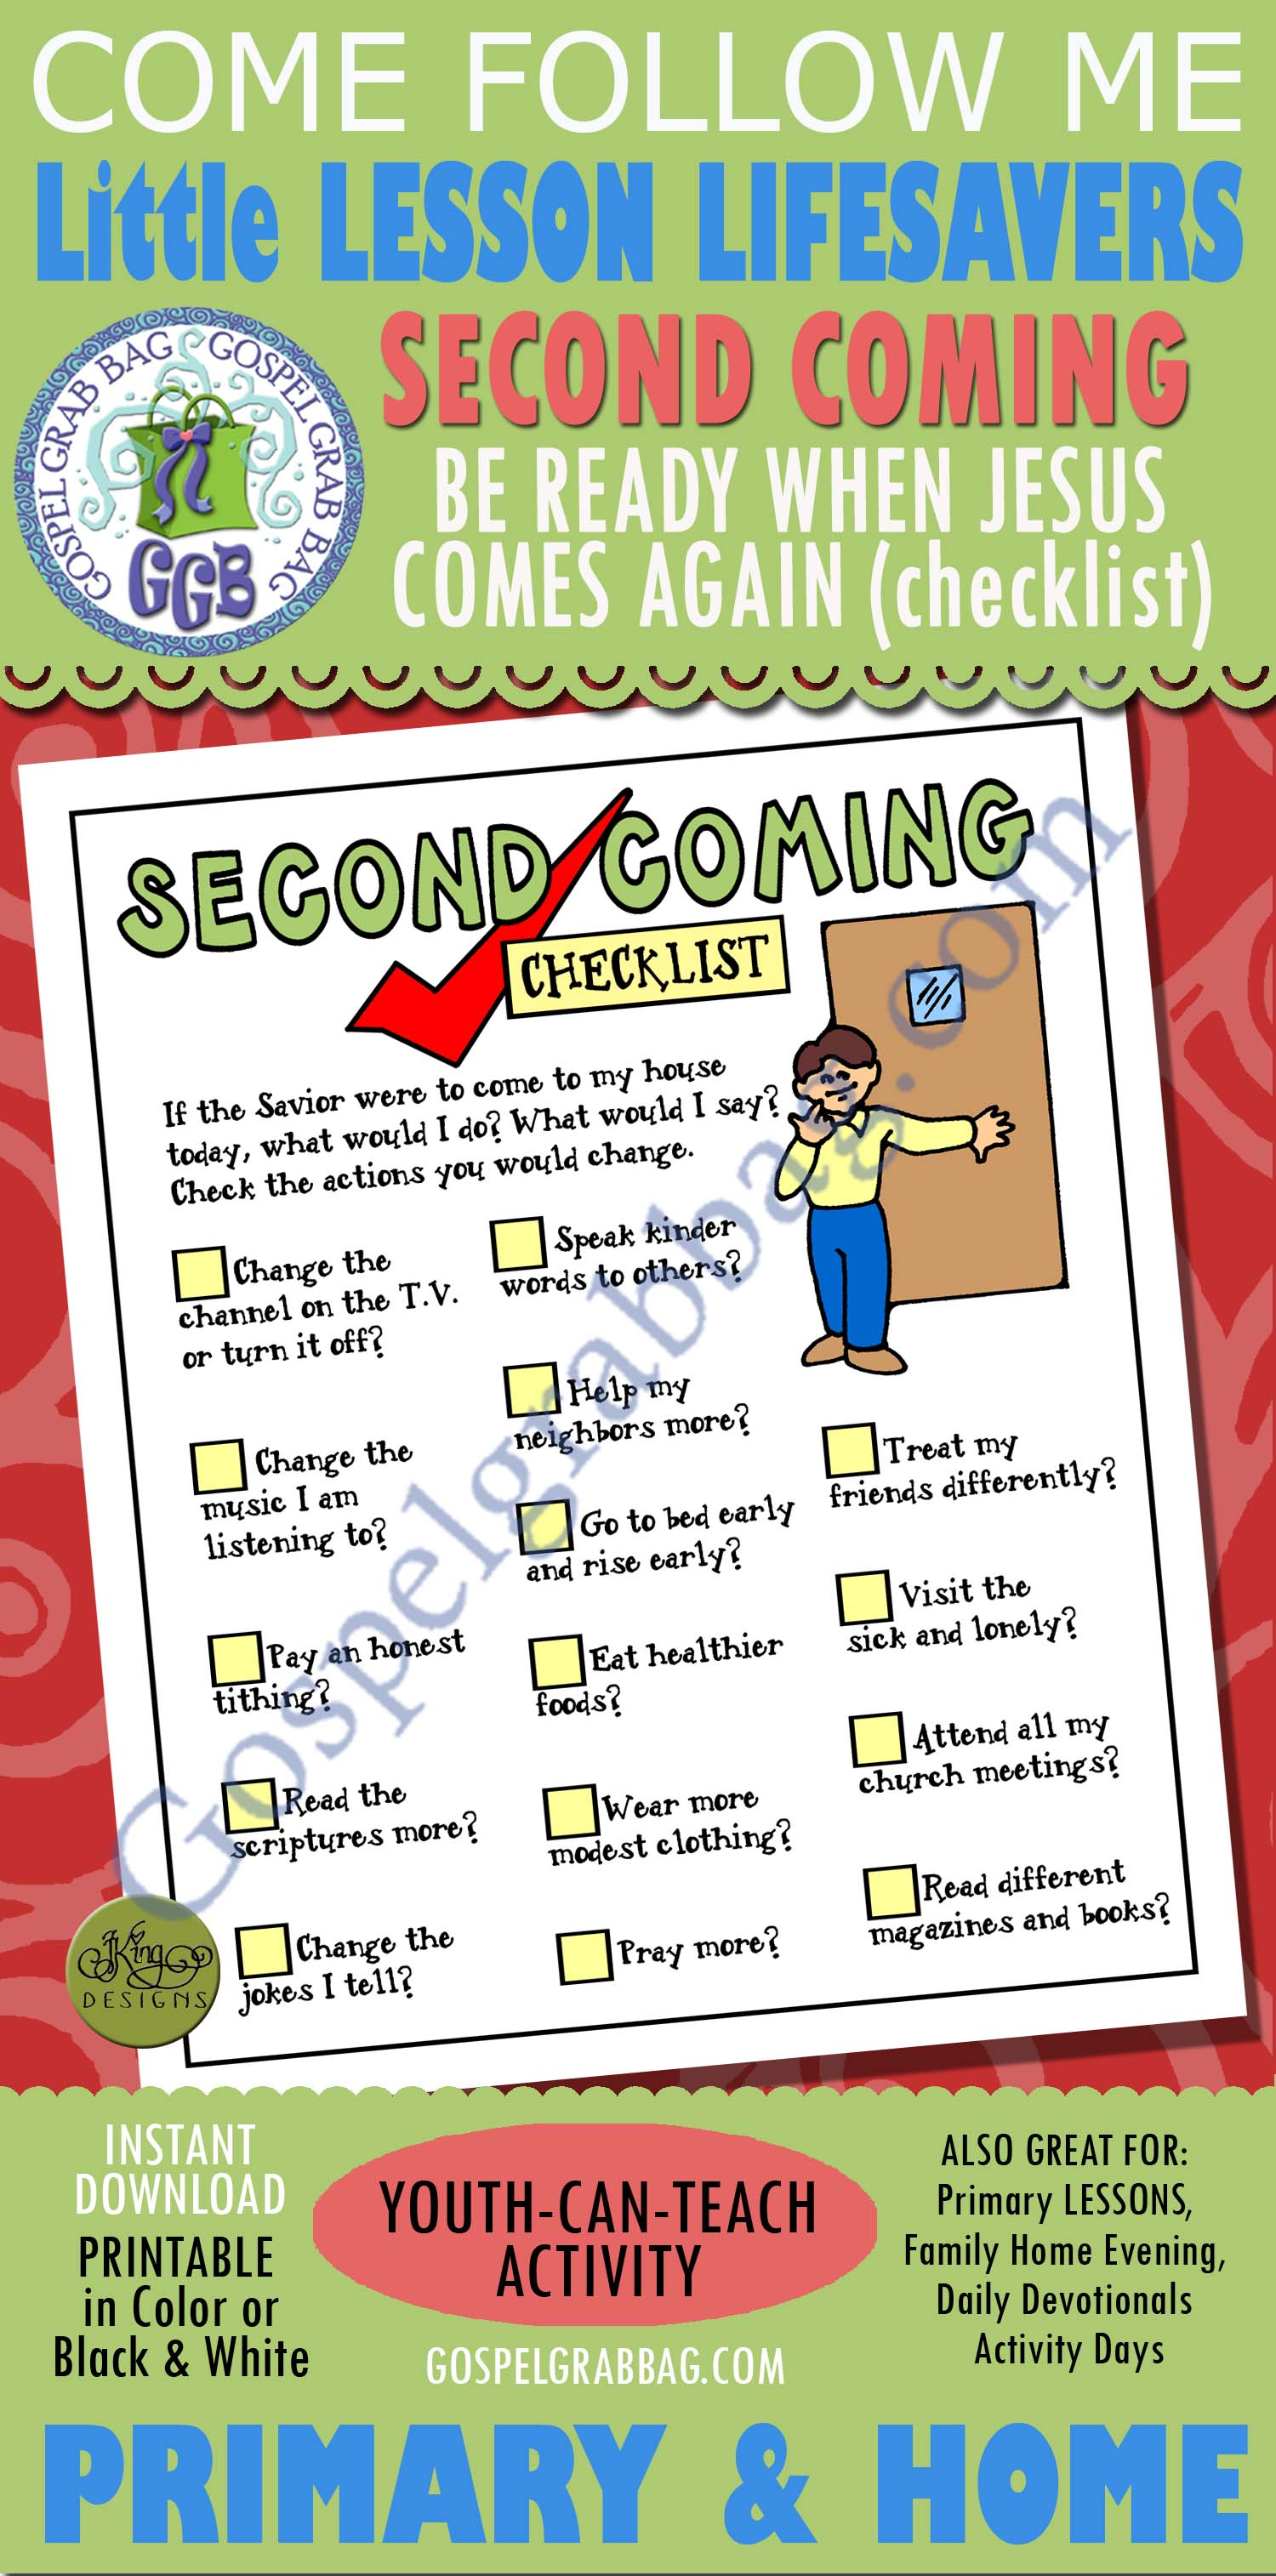 Second Coming Activity Be Ready When Jesus Christ Comes